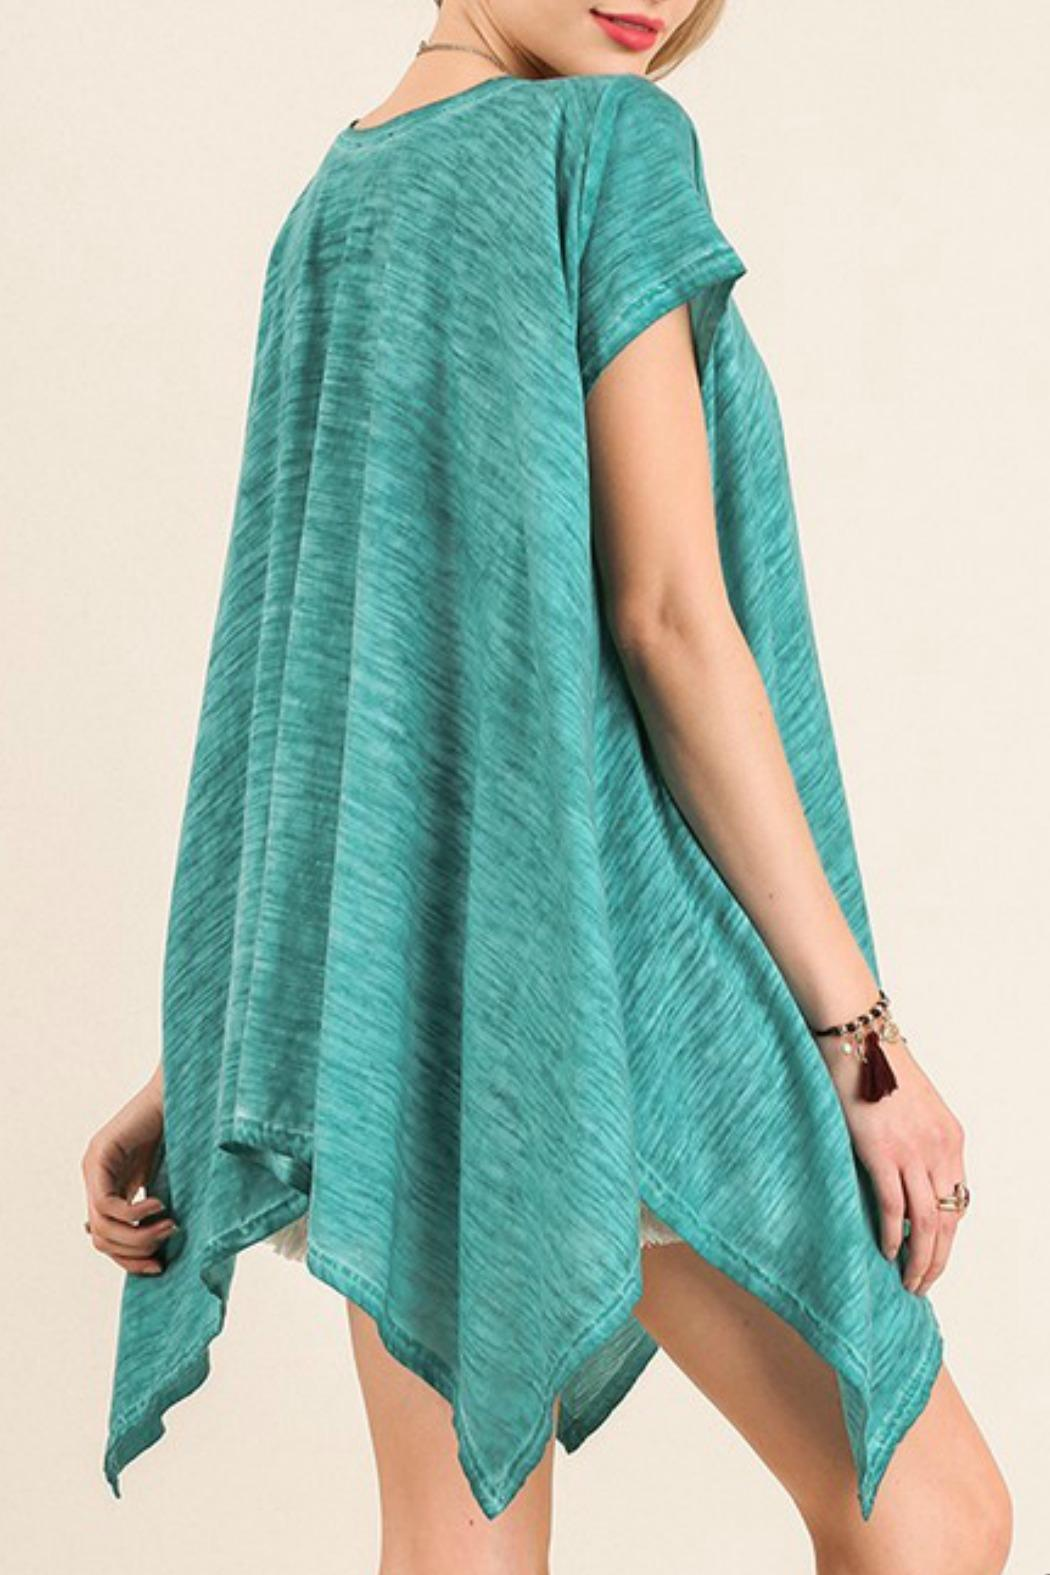 Umgee USA Turquoise Top - Side Cropped Image